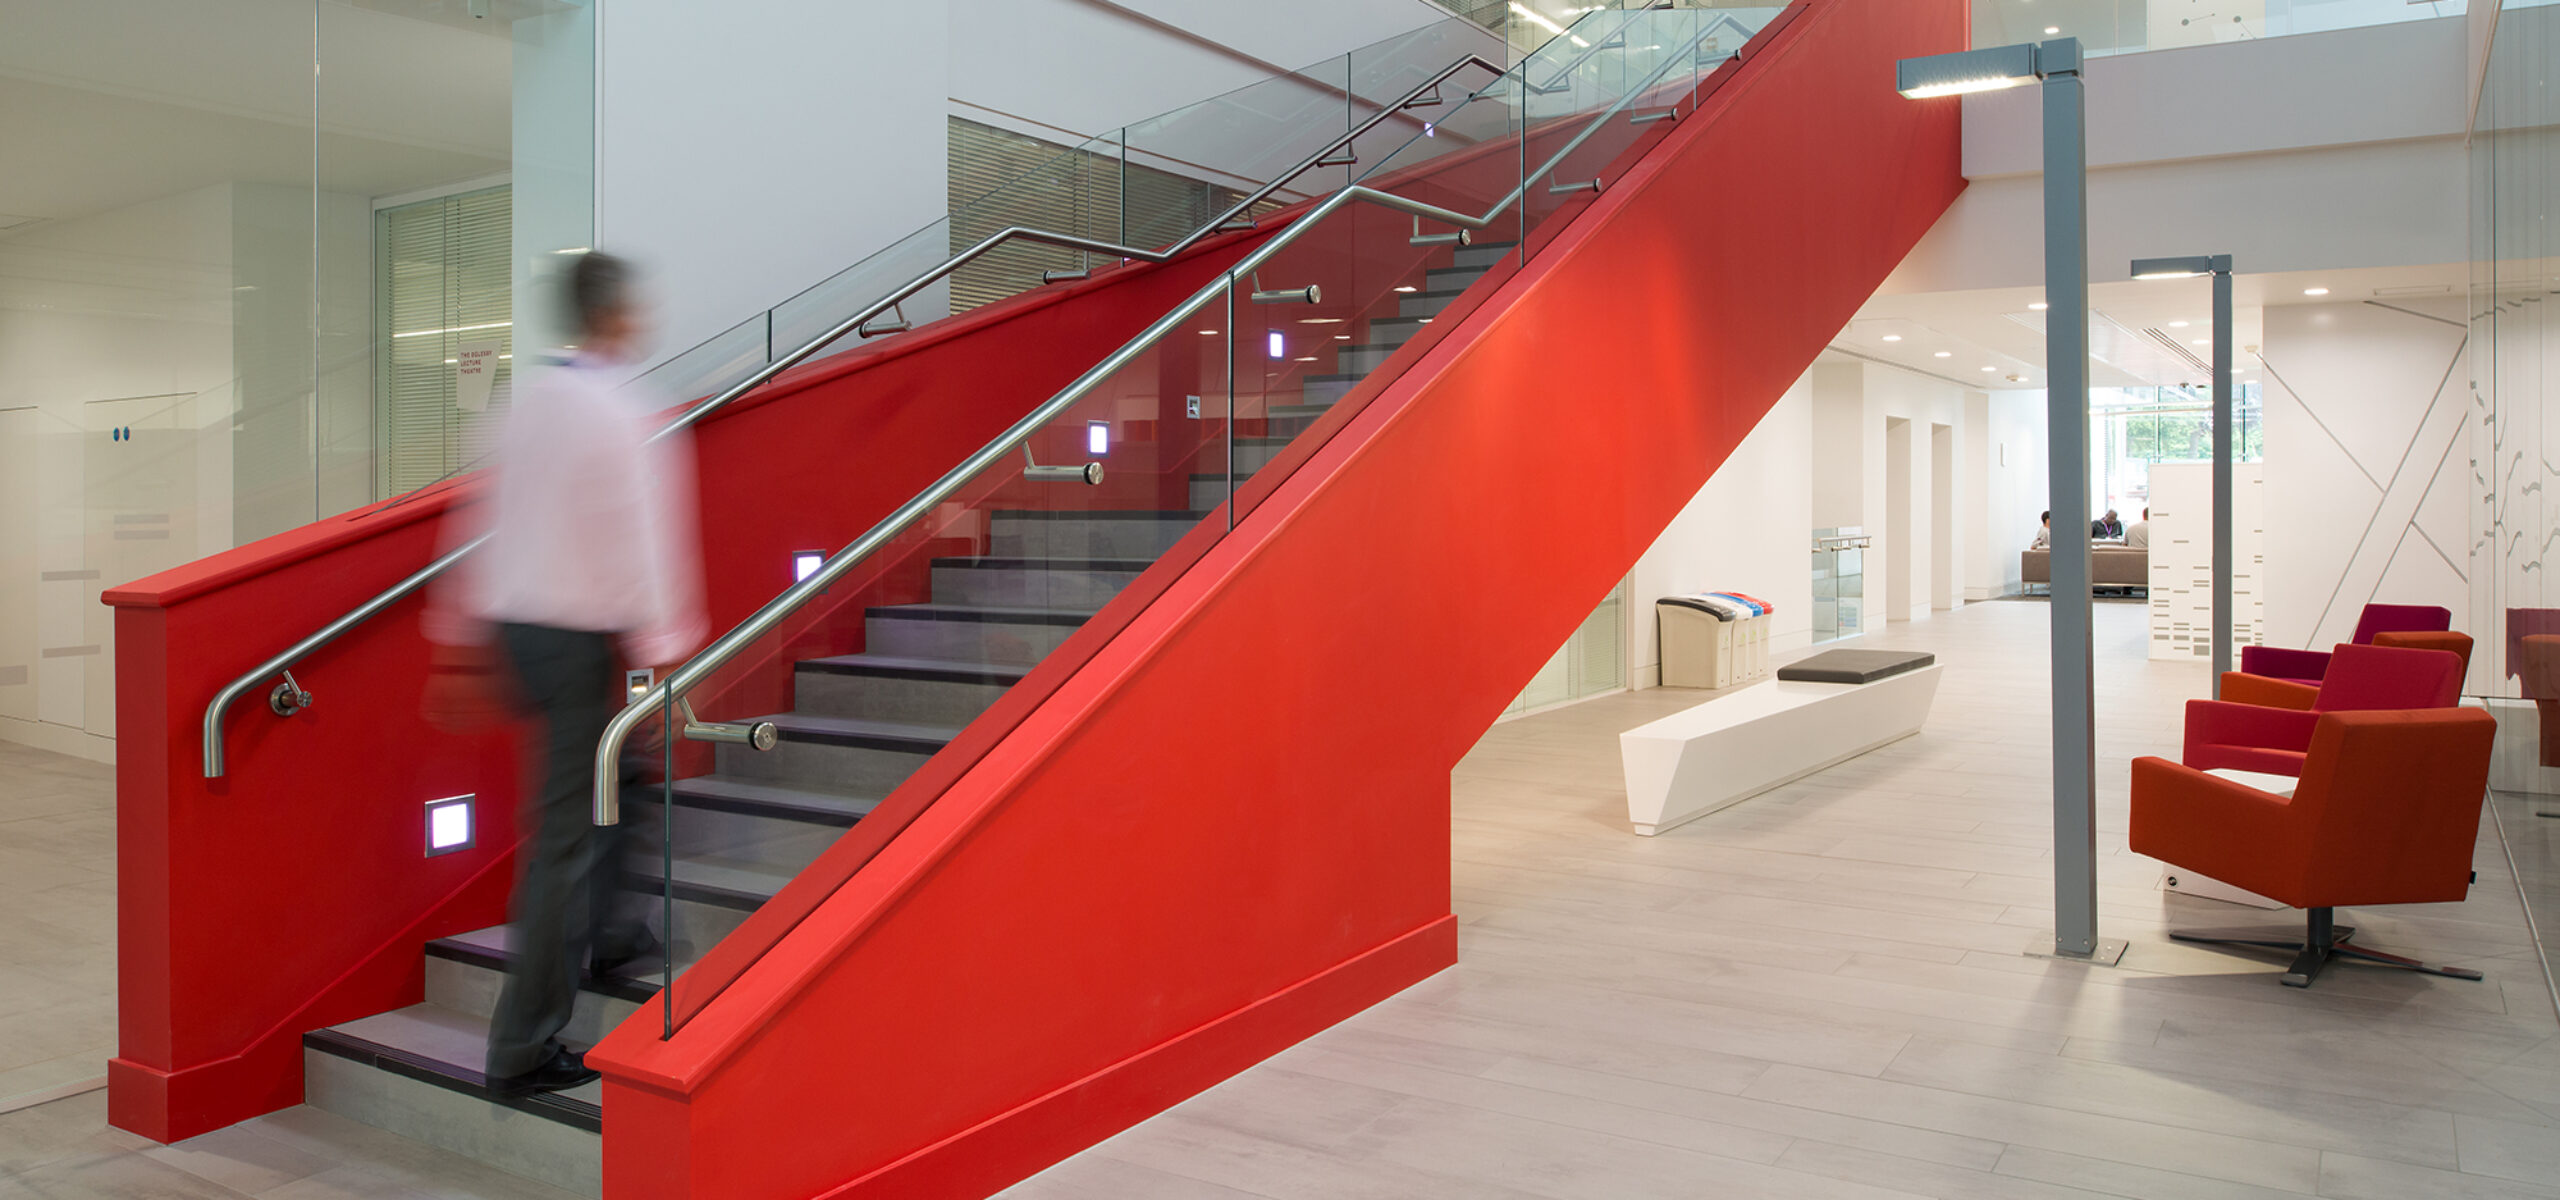 Staircase in the OCRB from ground floor